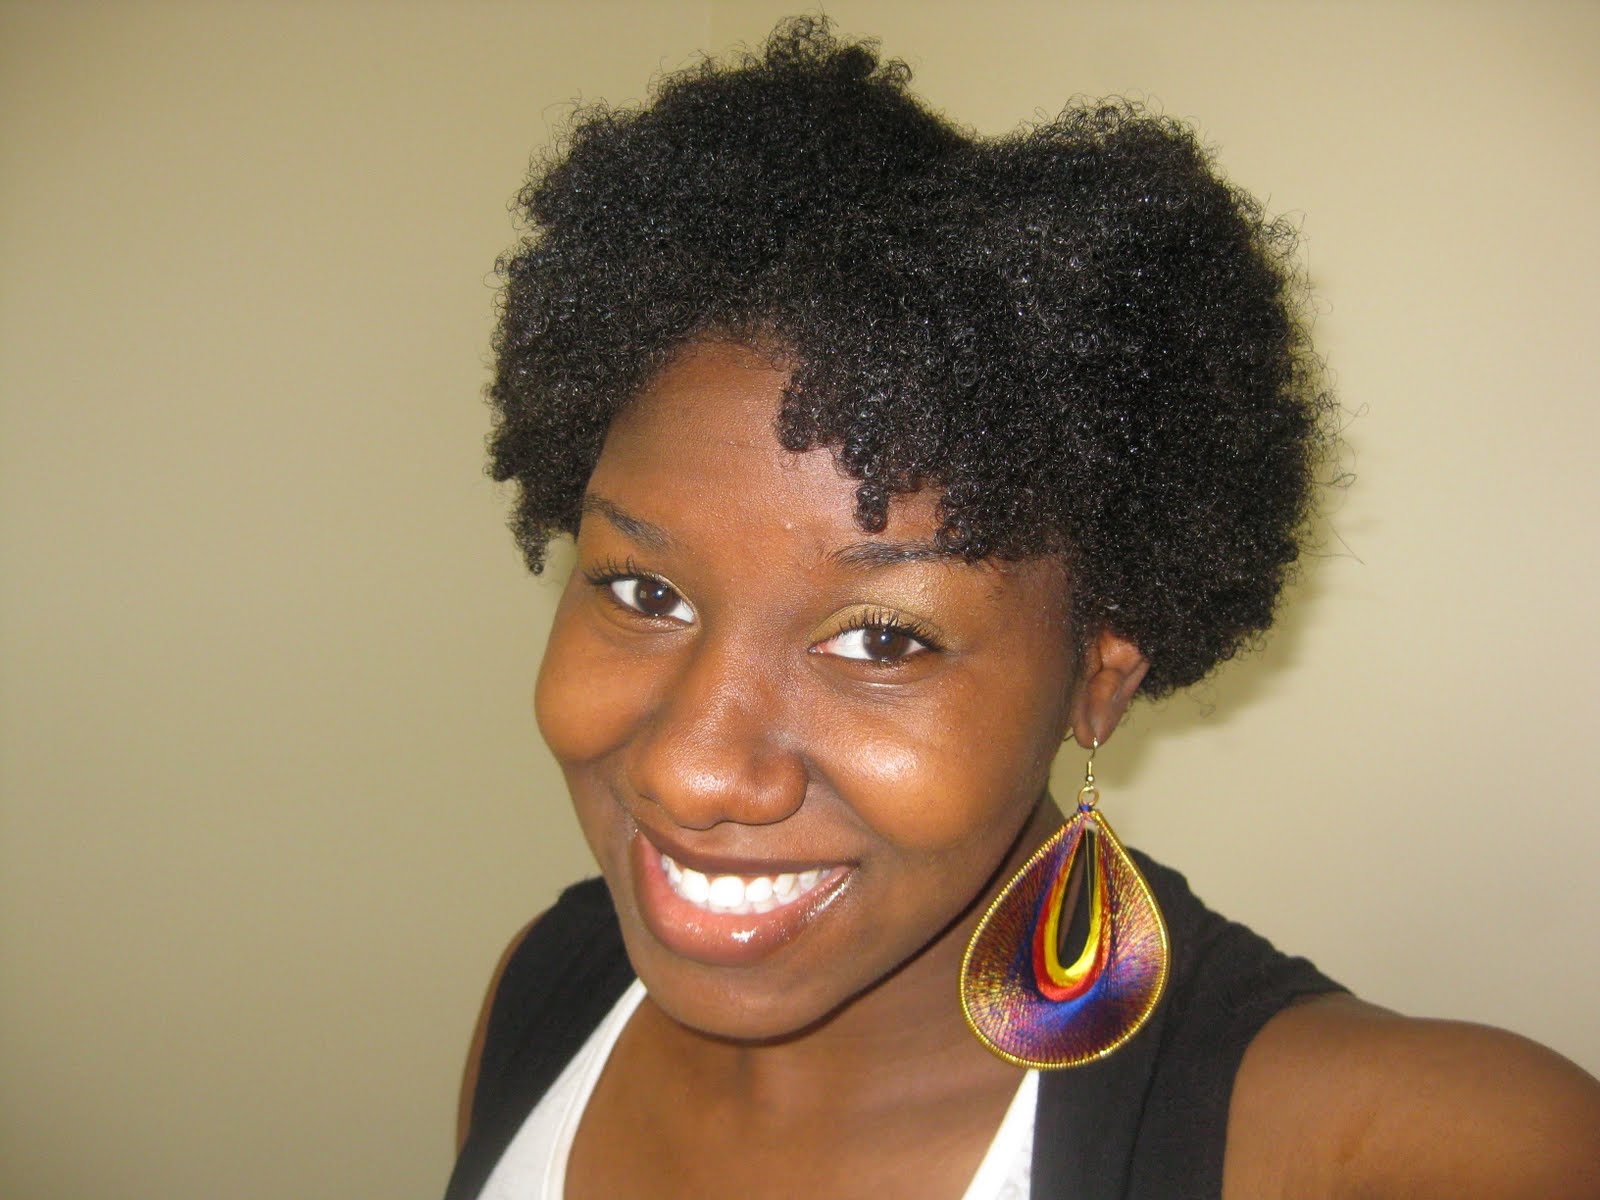 Transition Hair Styles: Transition To Natural Hair- Online Support